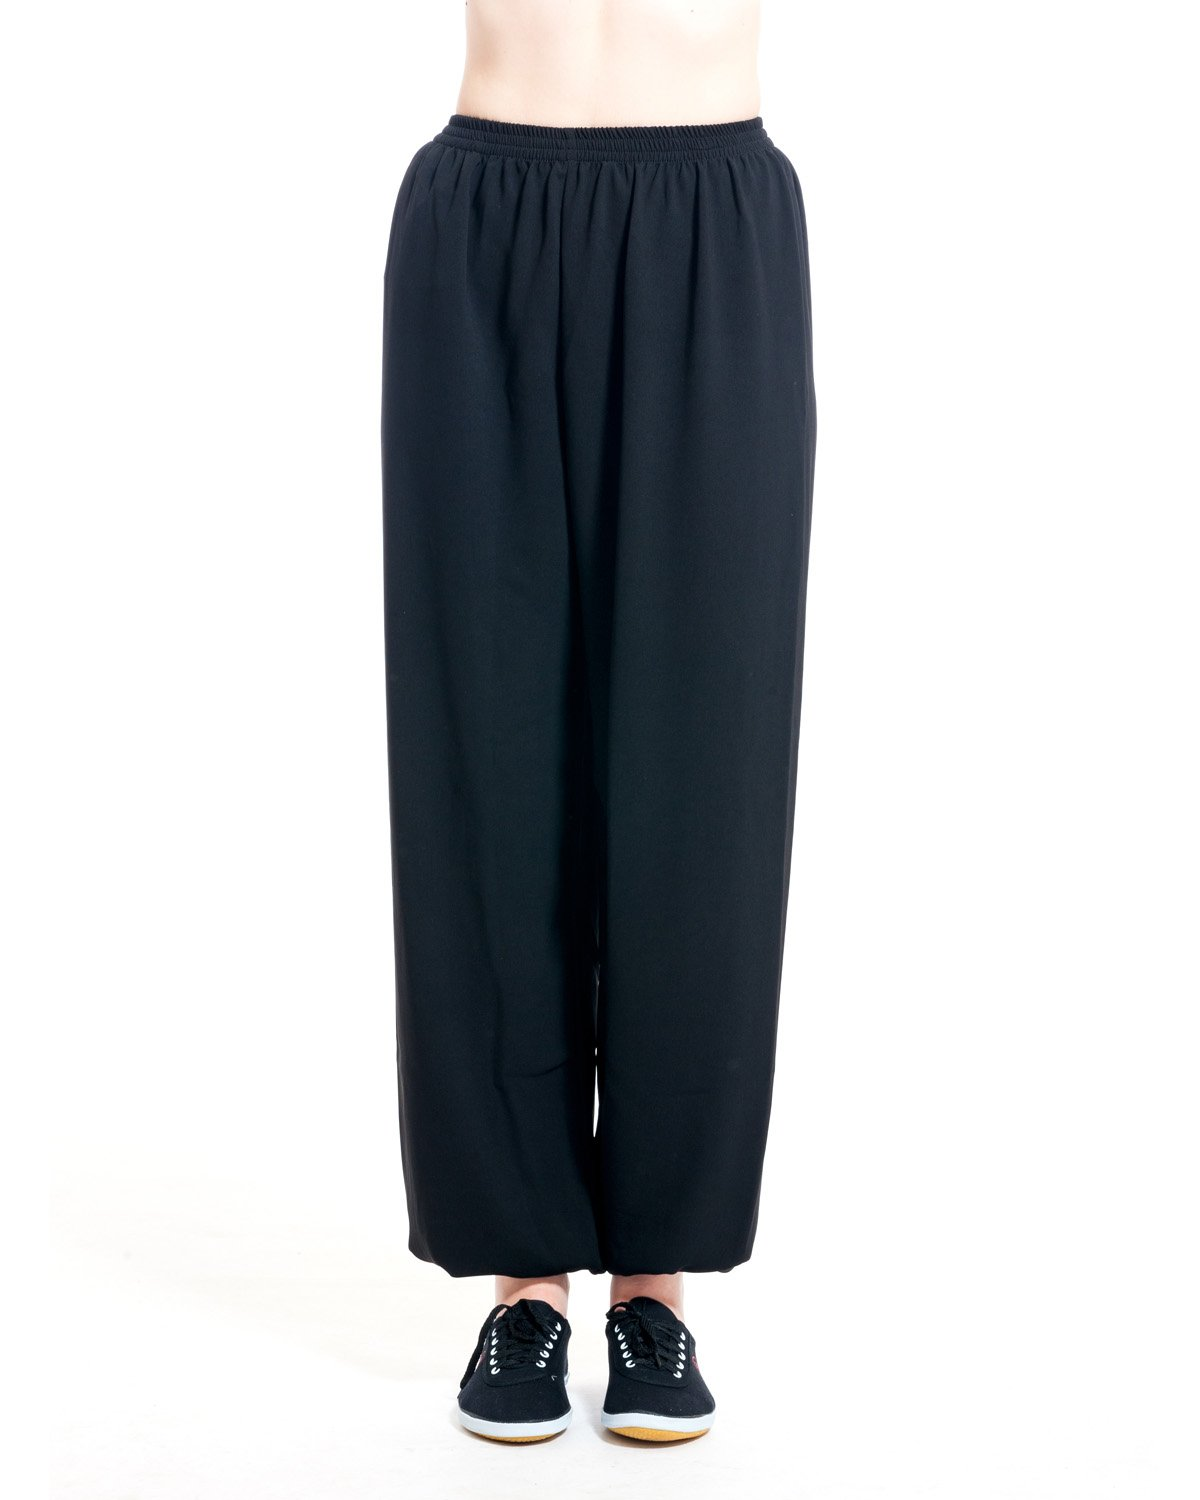 ICNBUYS Women's Kung Fu Tai Chi Pants Cotton Silk S Black by ICNBUYS